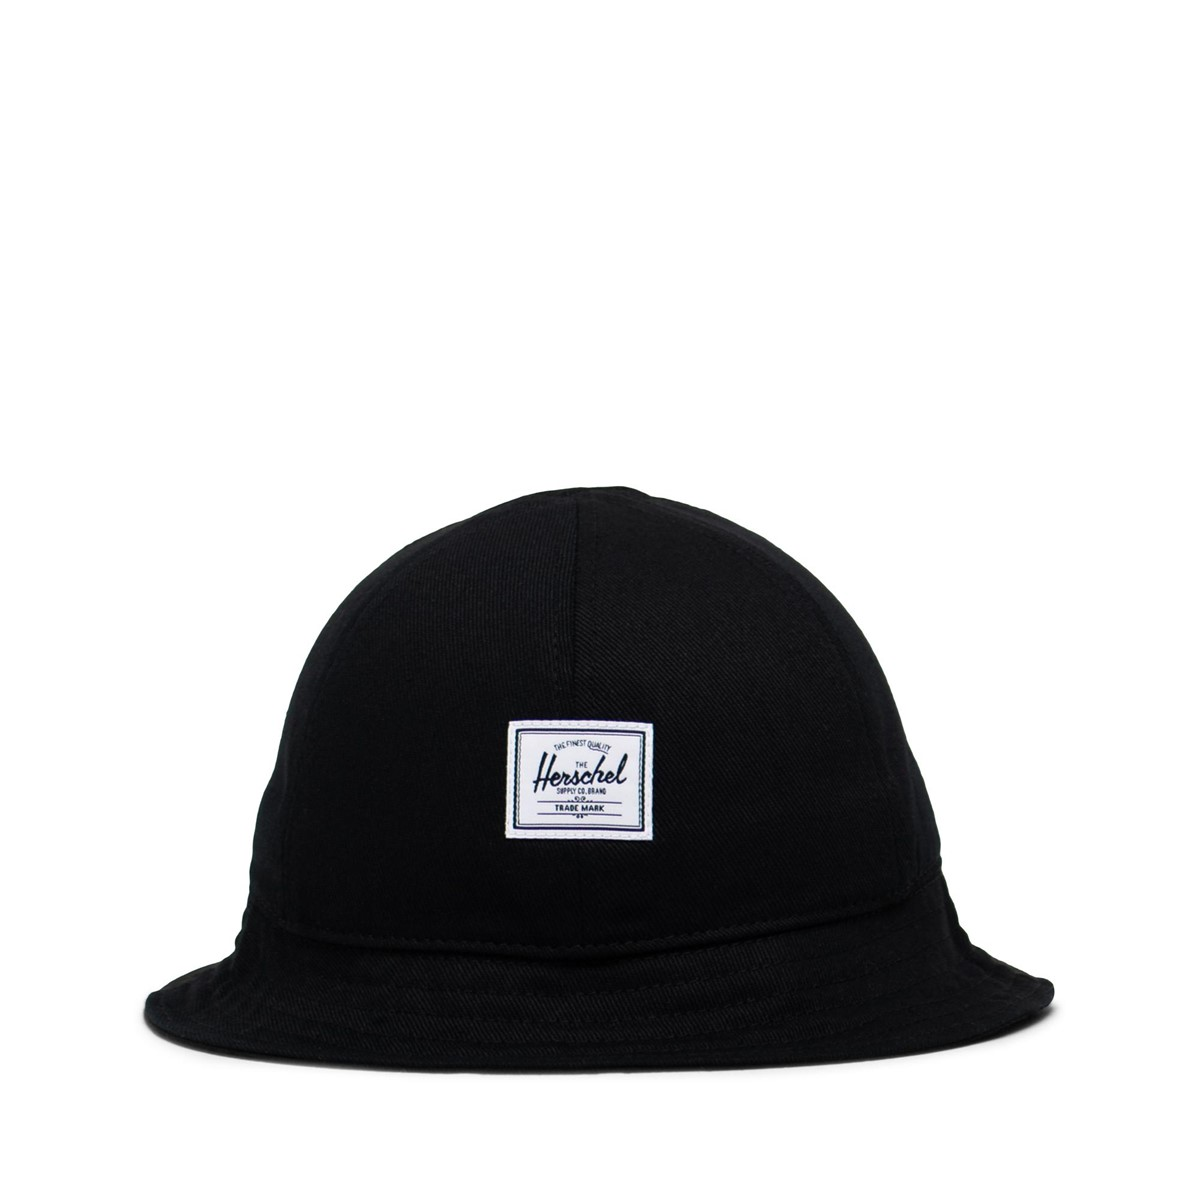 Henderson Bucket Hat in Black